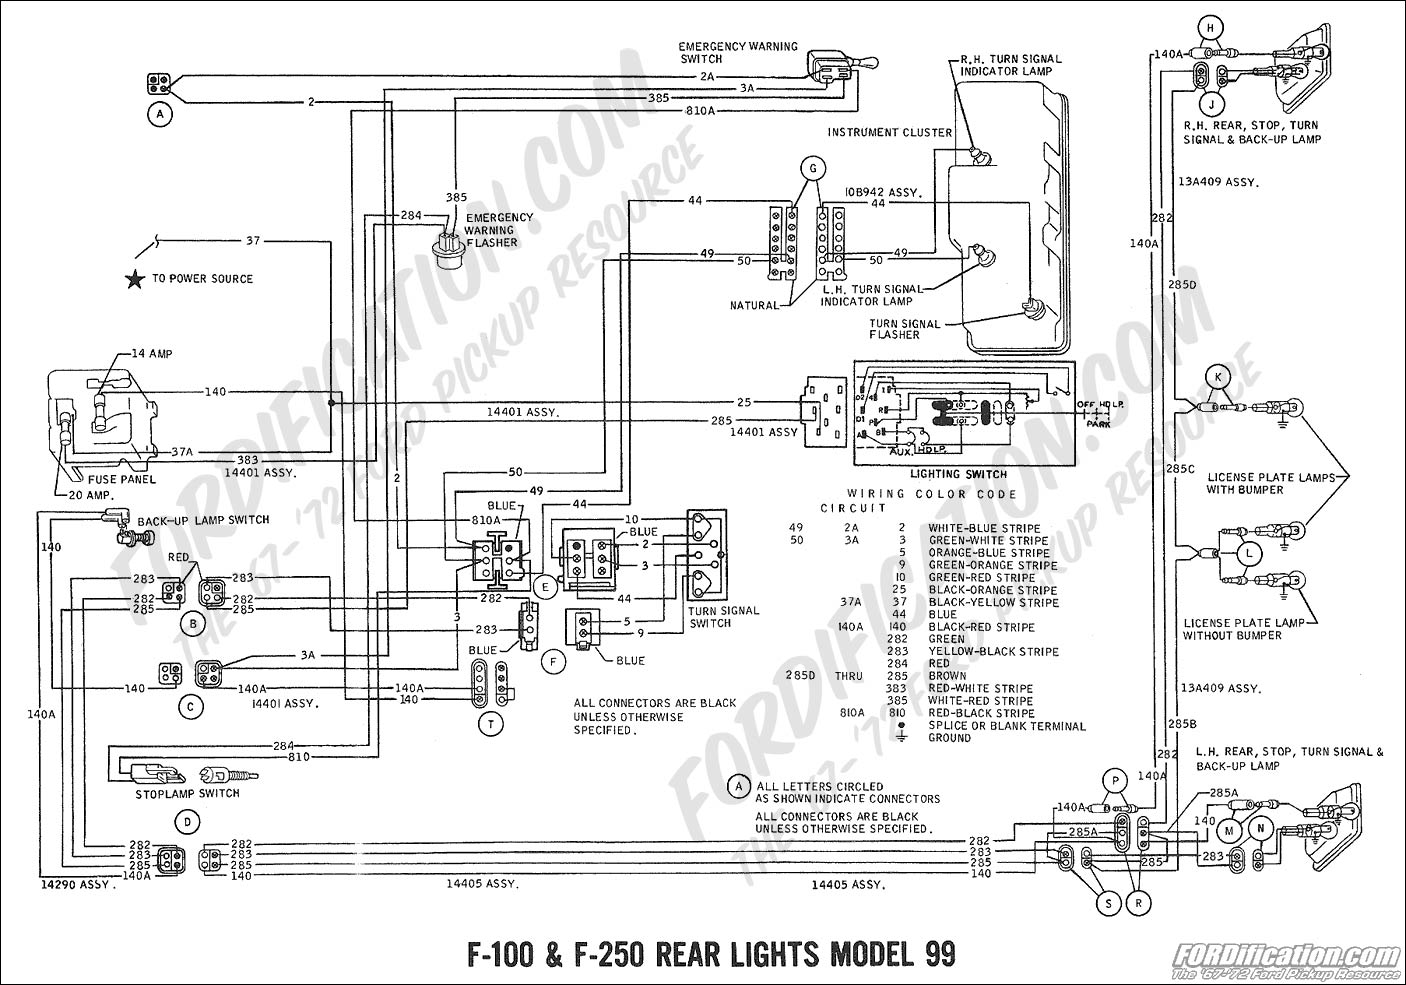 u0026gt  circuits  u0026gt  99 civic wiring diagram courtesy lights